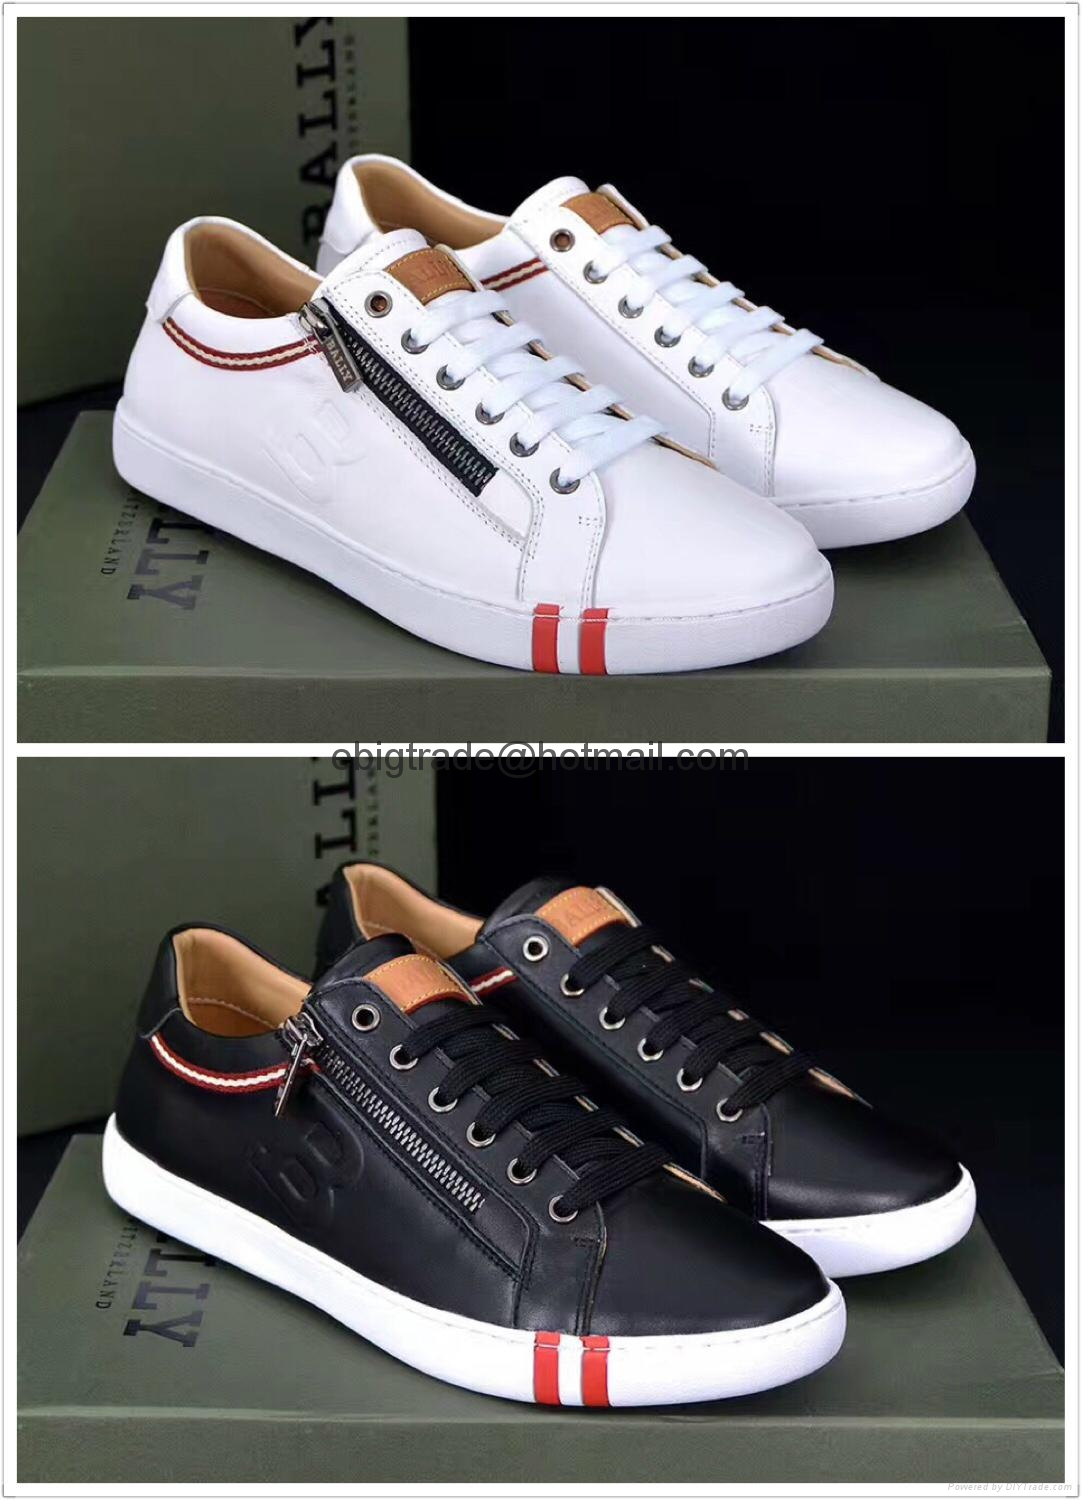 Discount Mens Sneakers Sale: Save Up to 60% Off! Shop private-dev.tk's huge selection of Cheap Mens Sneakers - Over styles available. FREE Shipping & Exchanges, and a % price guarantee!